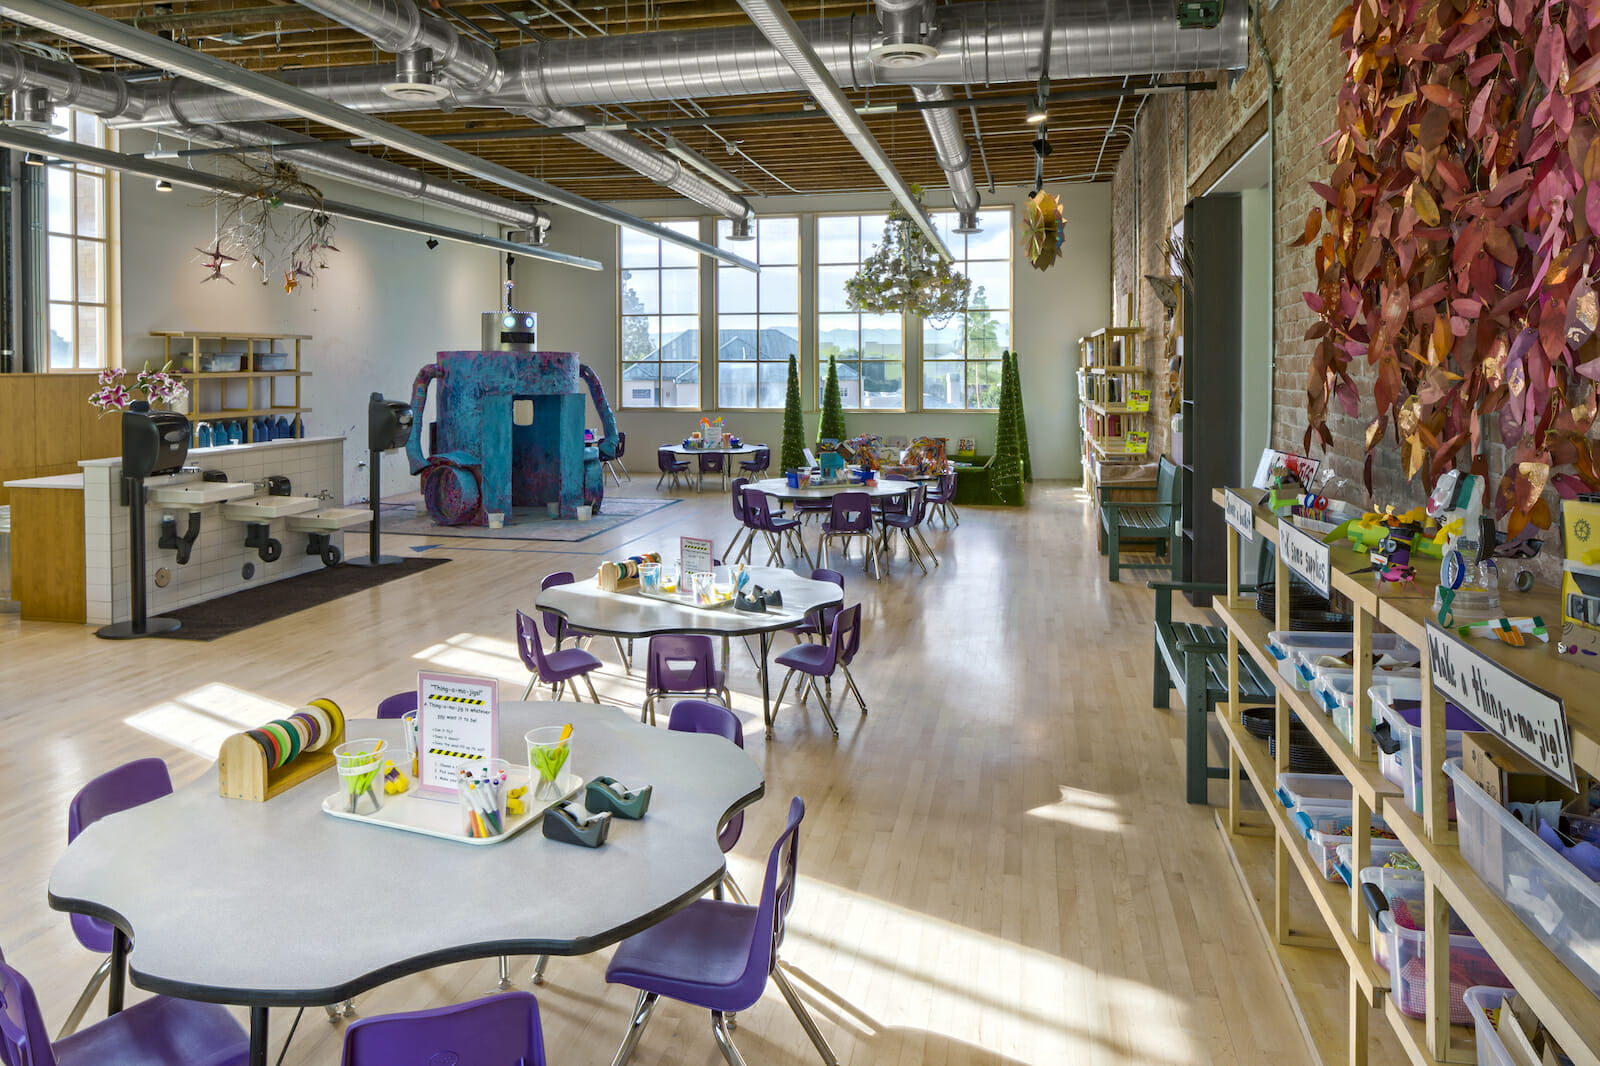 Phoenix Childrens Museum - Interior 1